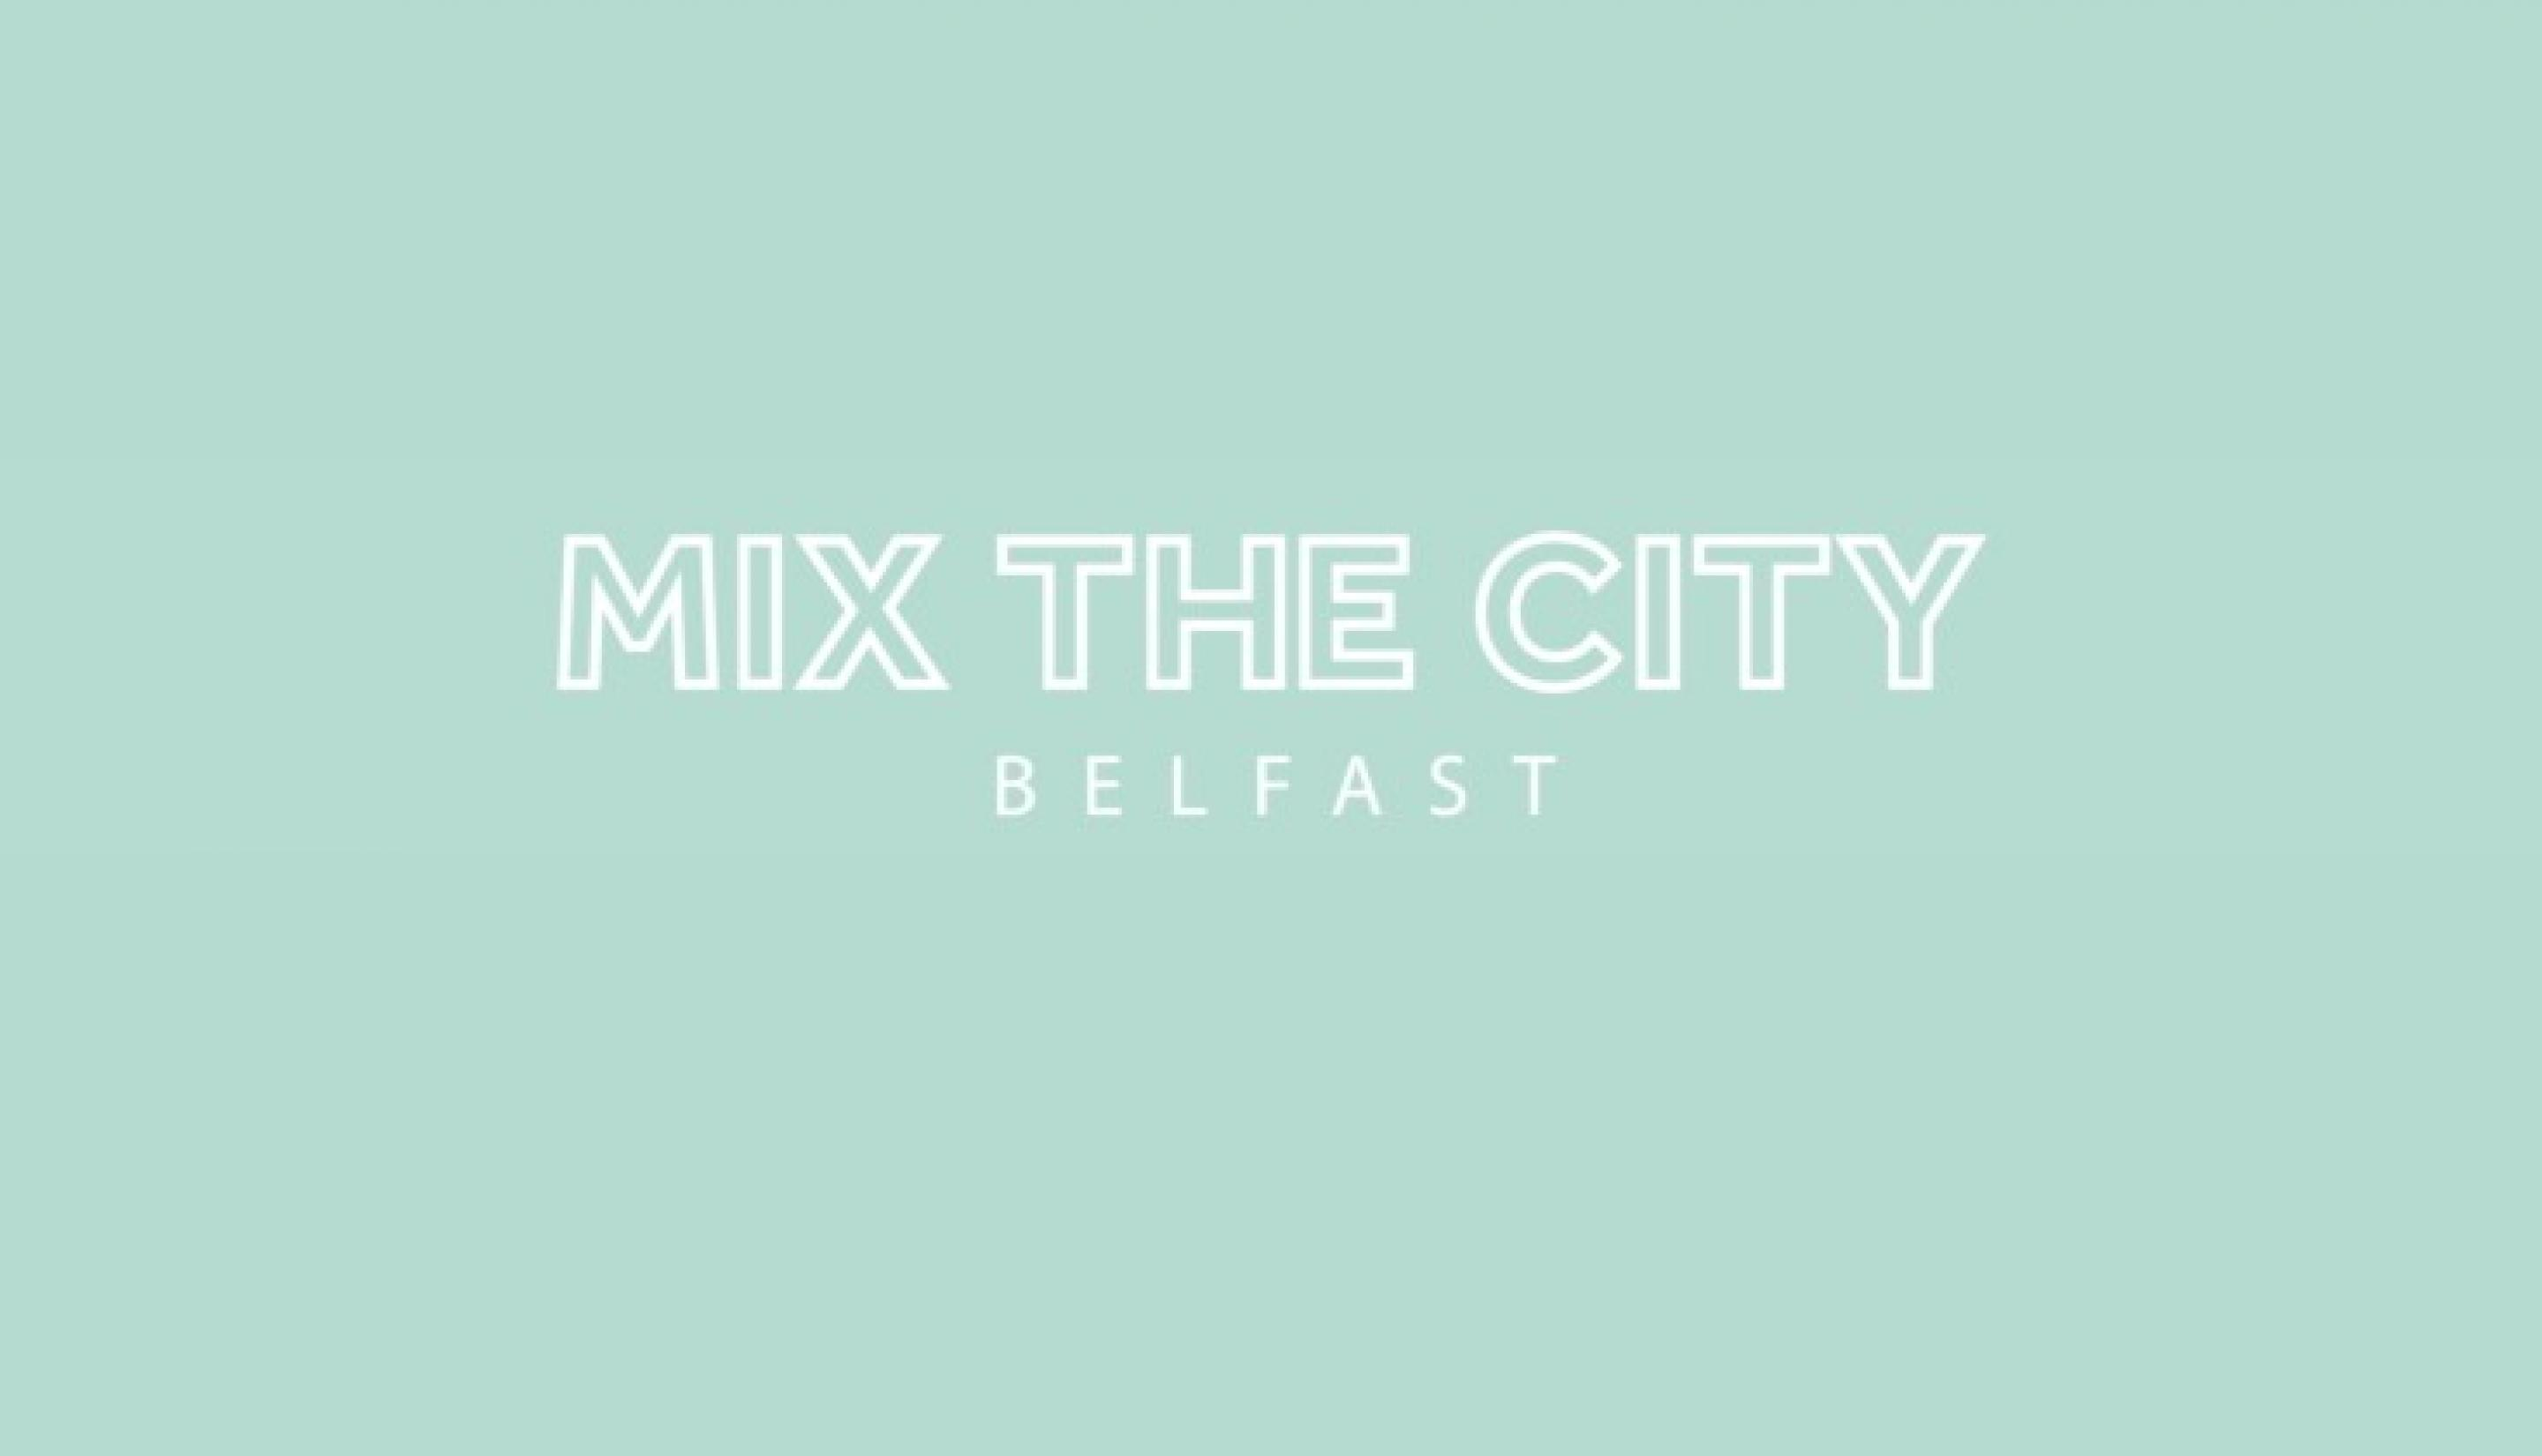 Mix the City Belfast